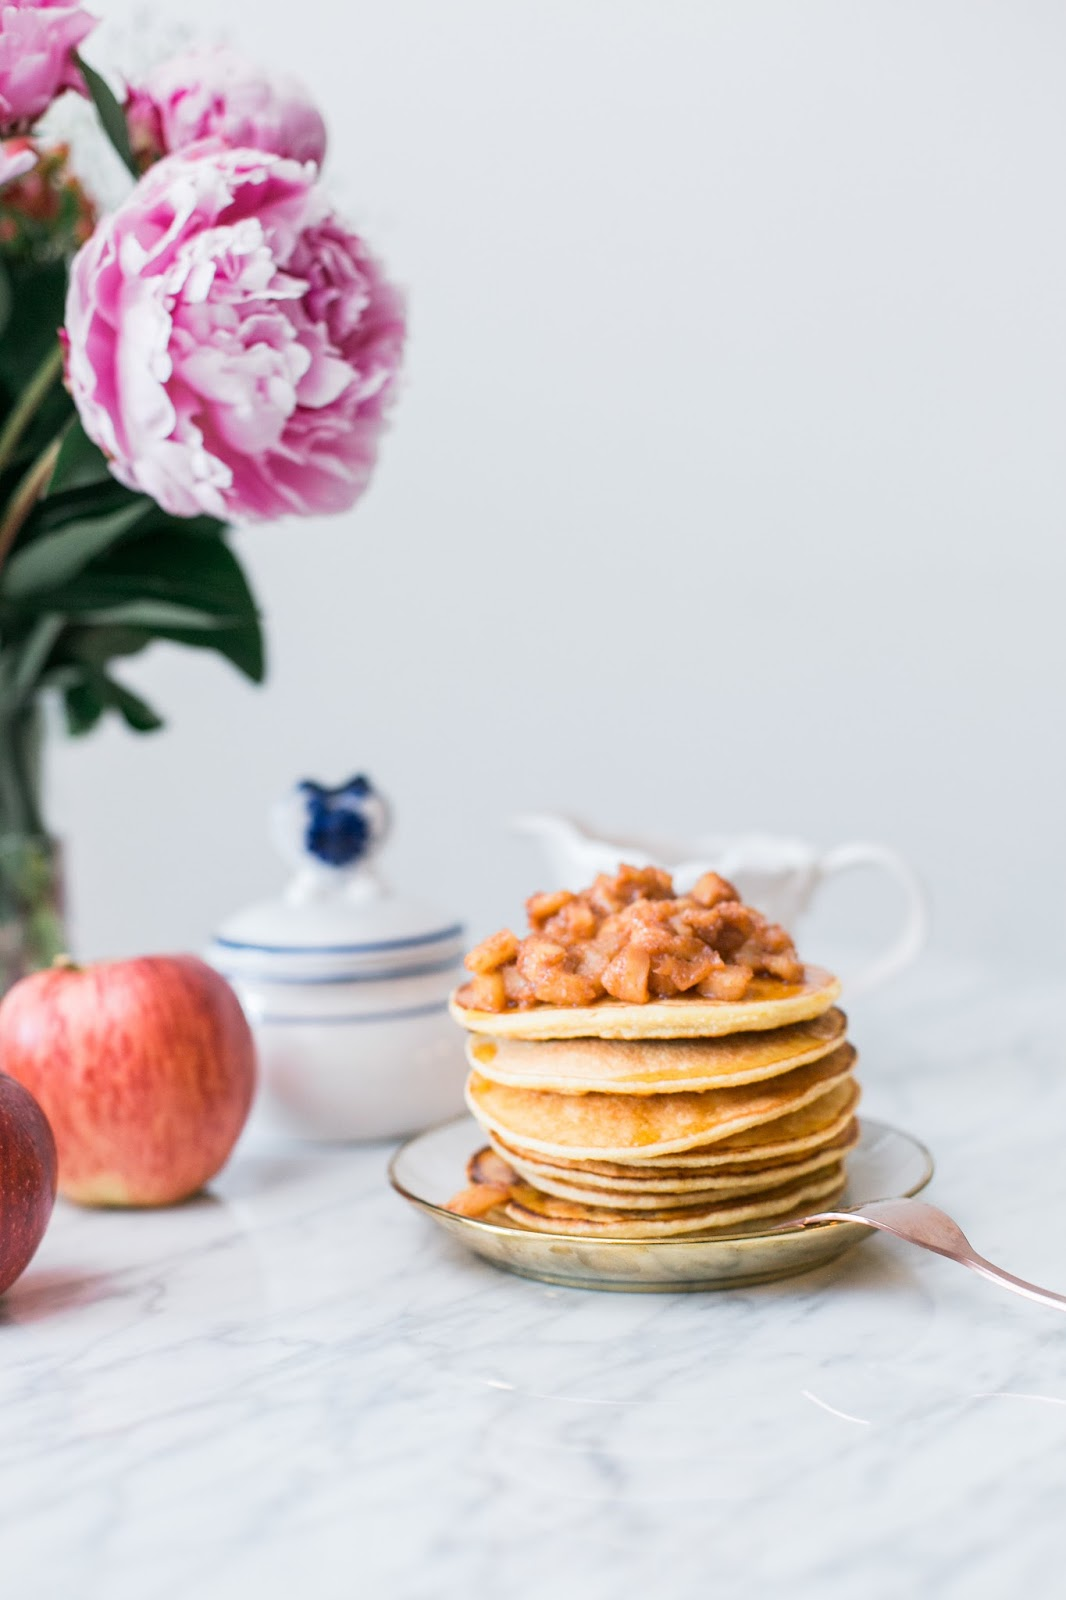 Bijuleni - The Benefits of Clean Eating and What I Learned - Gluten free pancakes